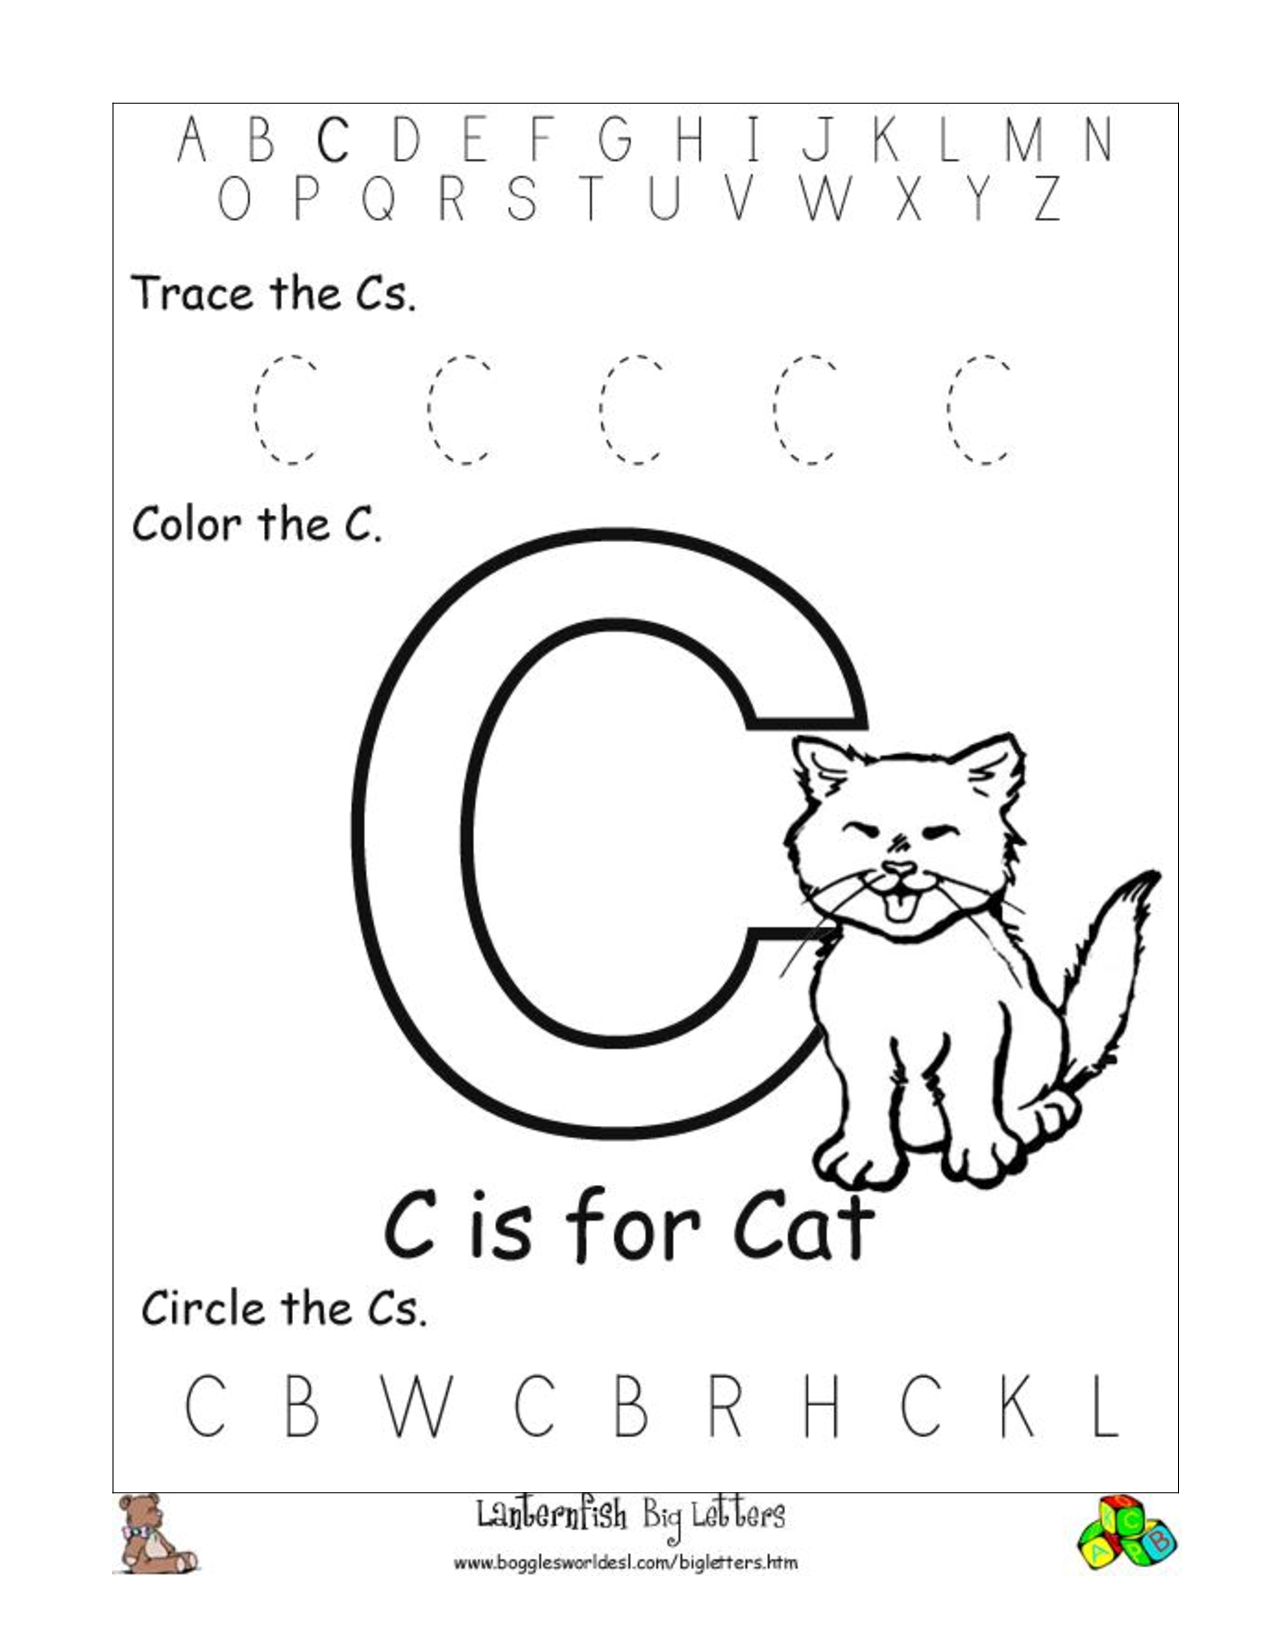 6 Best Images Of Free Printable Preschool Worksheets Letter C | Day - Free Printable Preschool Worksheets Letter C